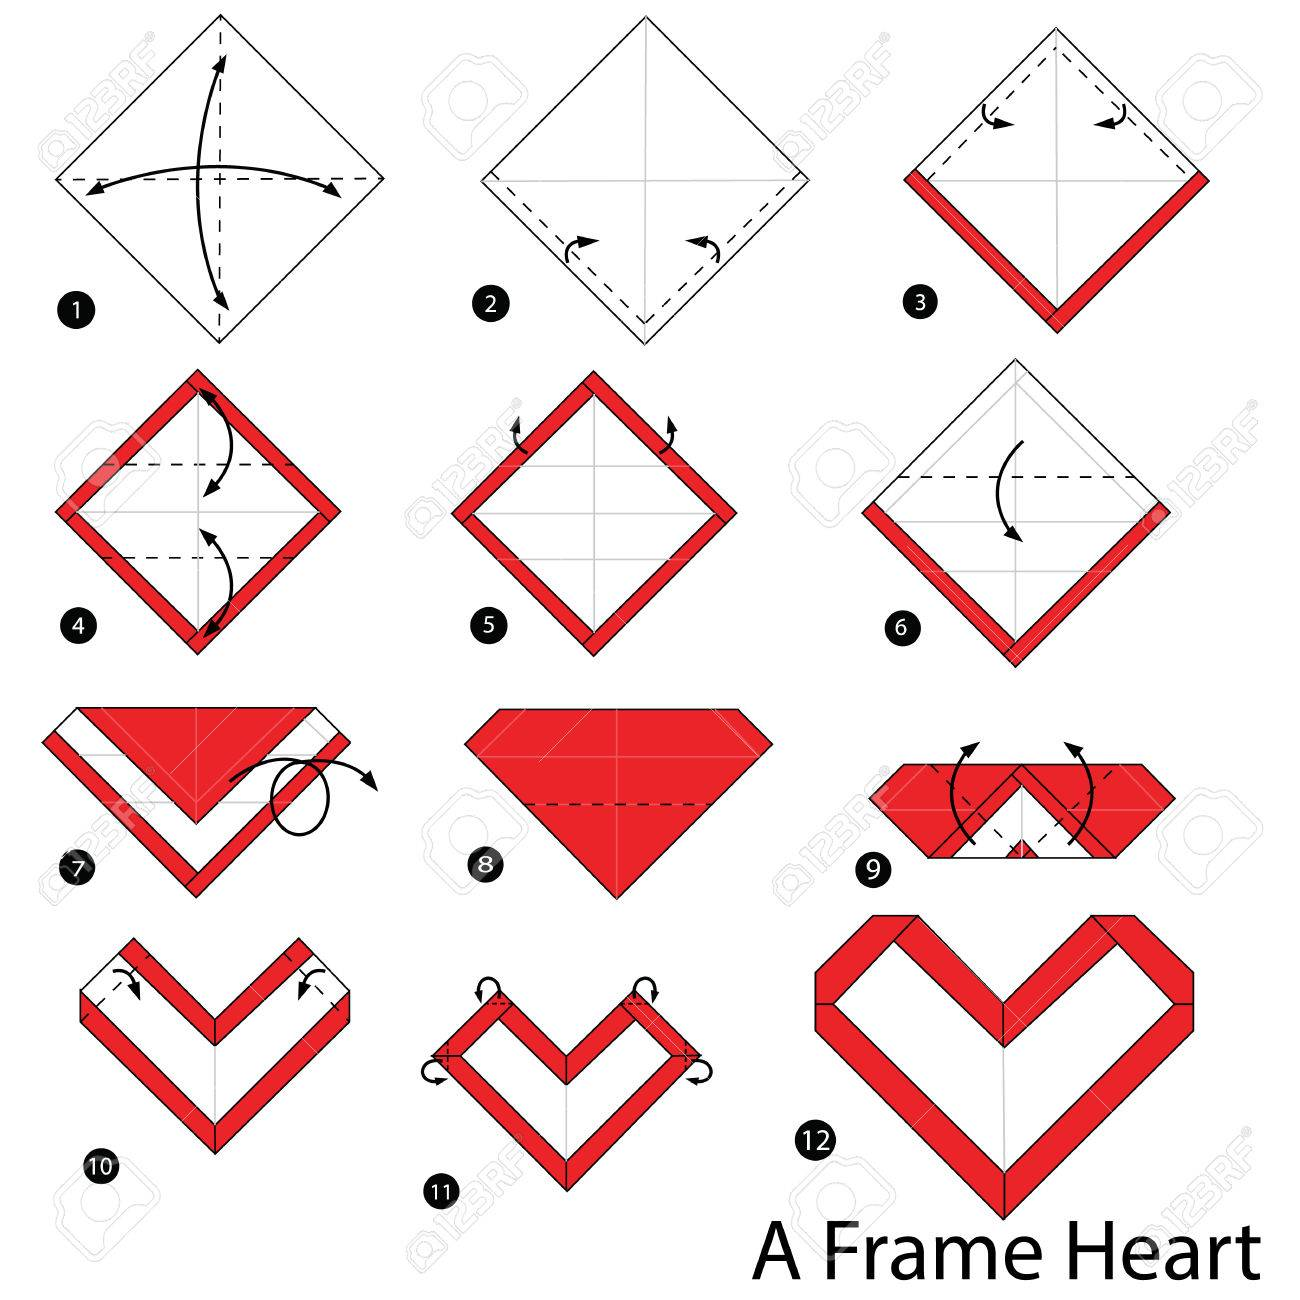 Step by step instructions how to make origami a frame heart step by step instructions how to make origami a frame heart stock vector 70447284 jeuxipadfo Images